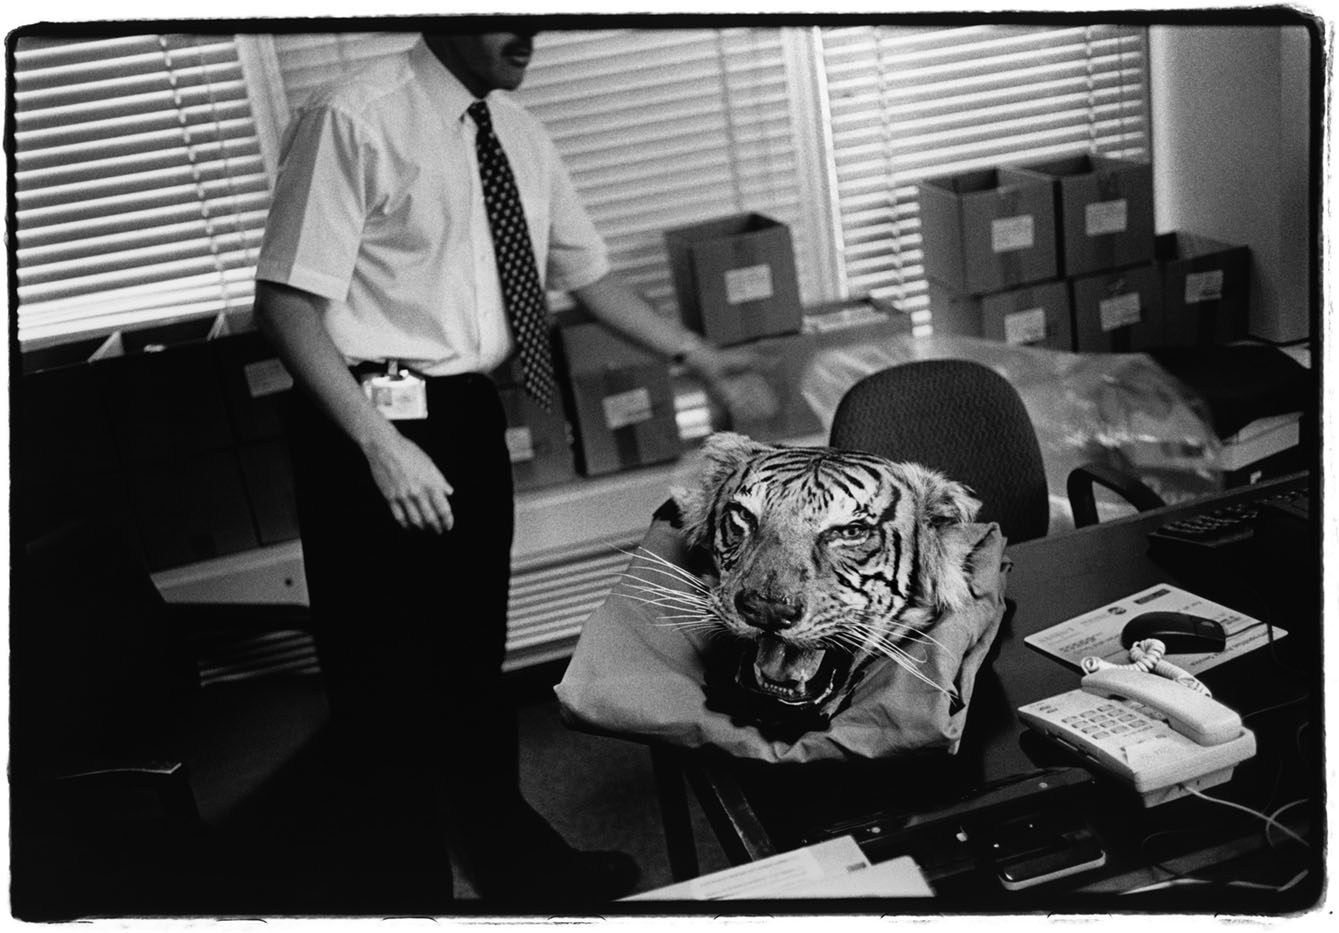 United Kingdom London, England, Great Britain, UK At Scotland Yard's animal protection unit, a police officer displays a tiger's head seized during a raid in London. 2003